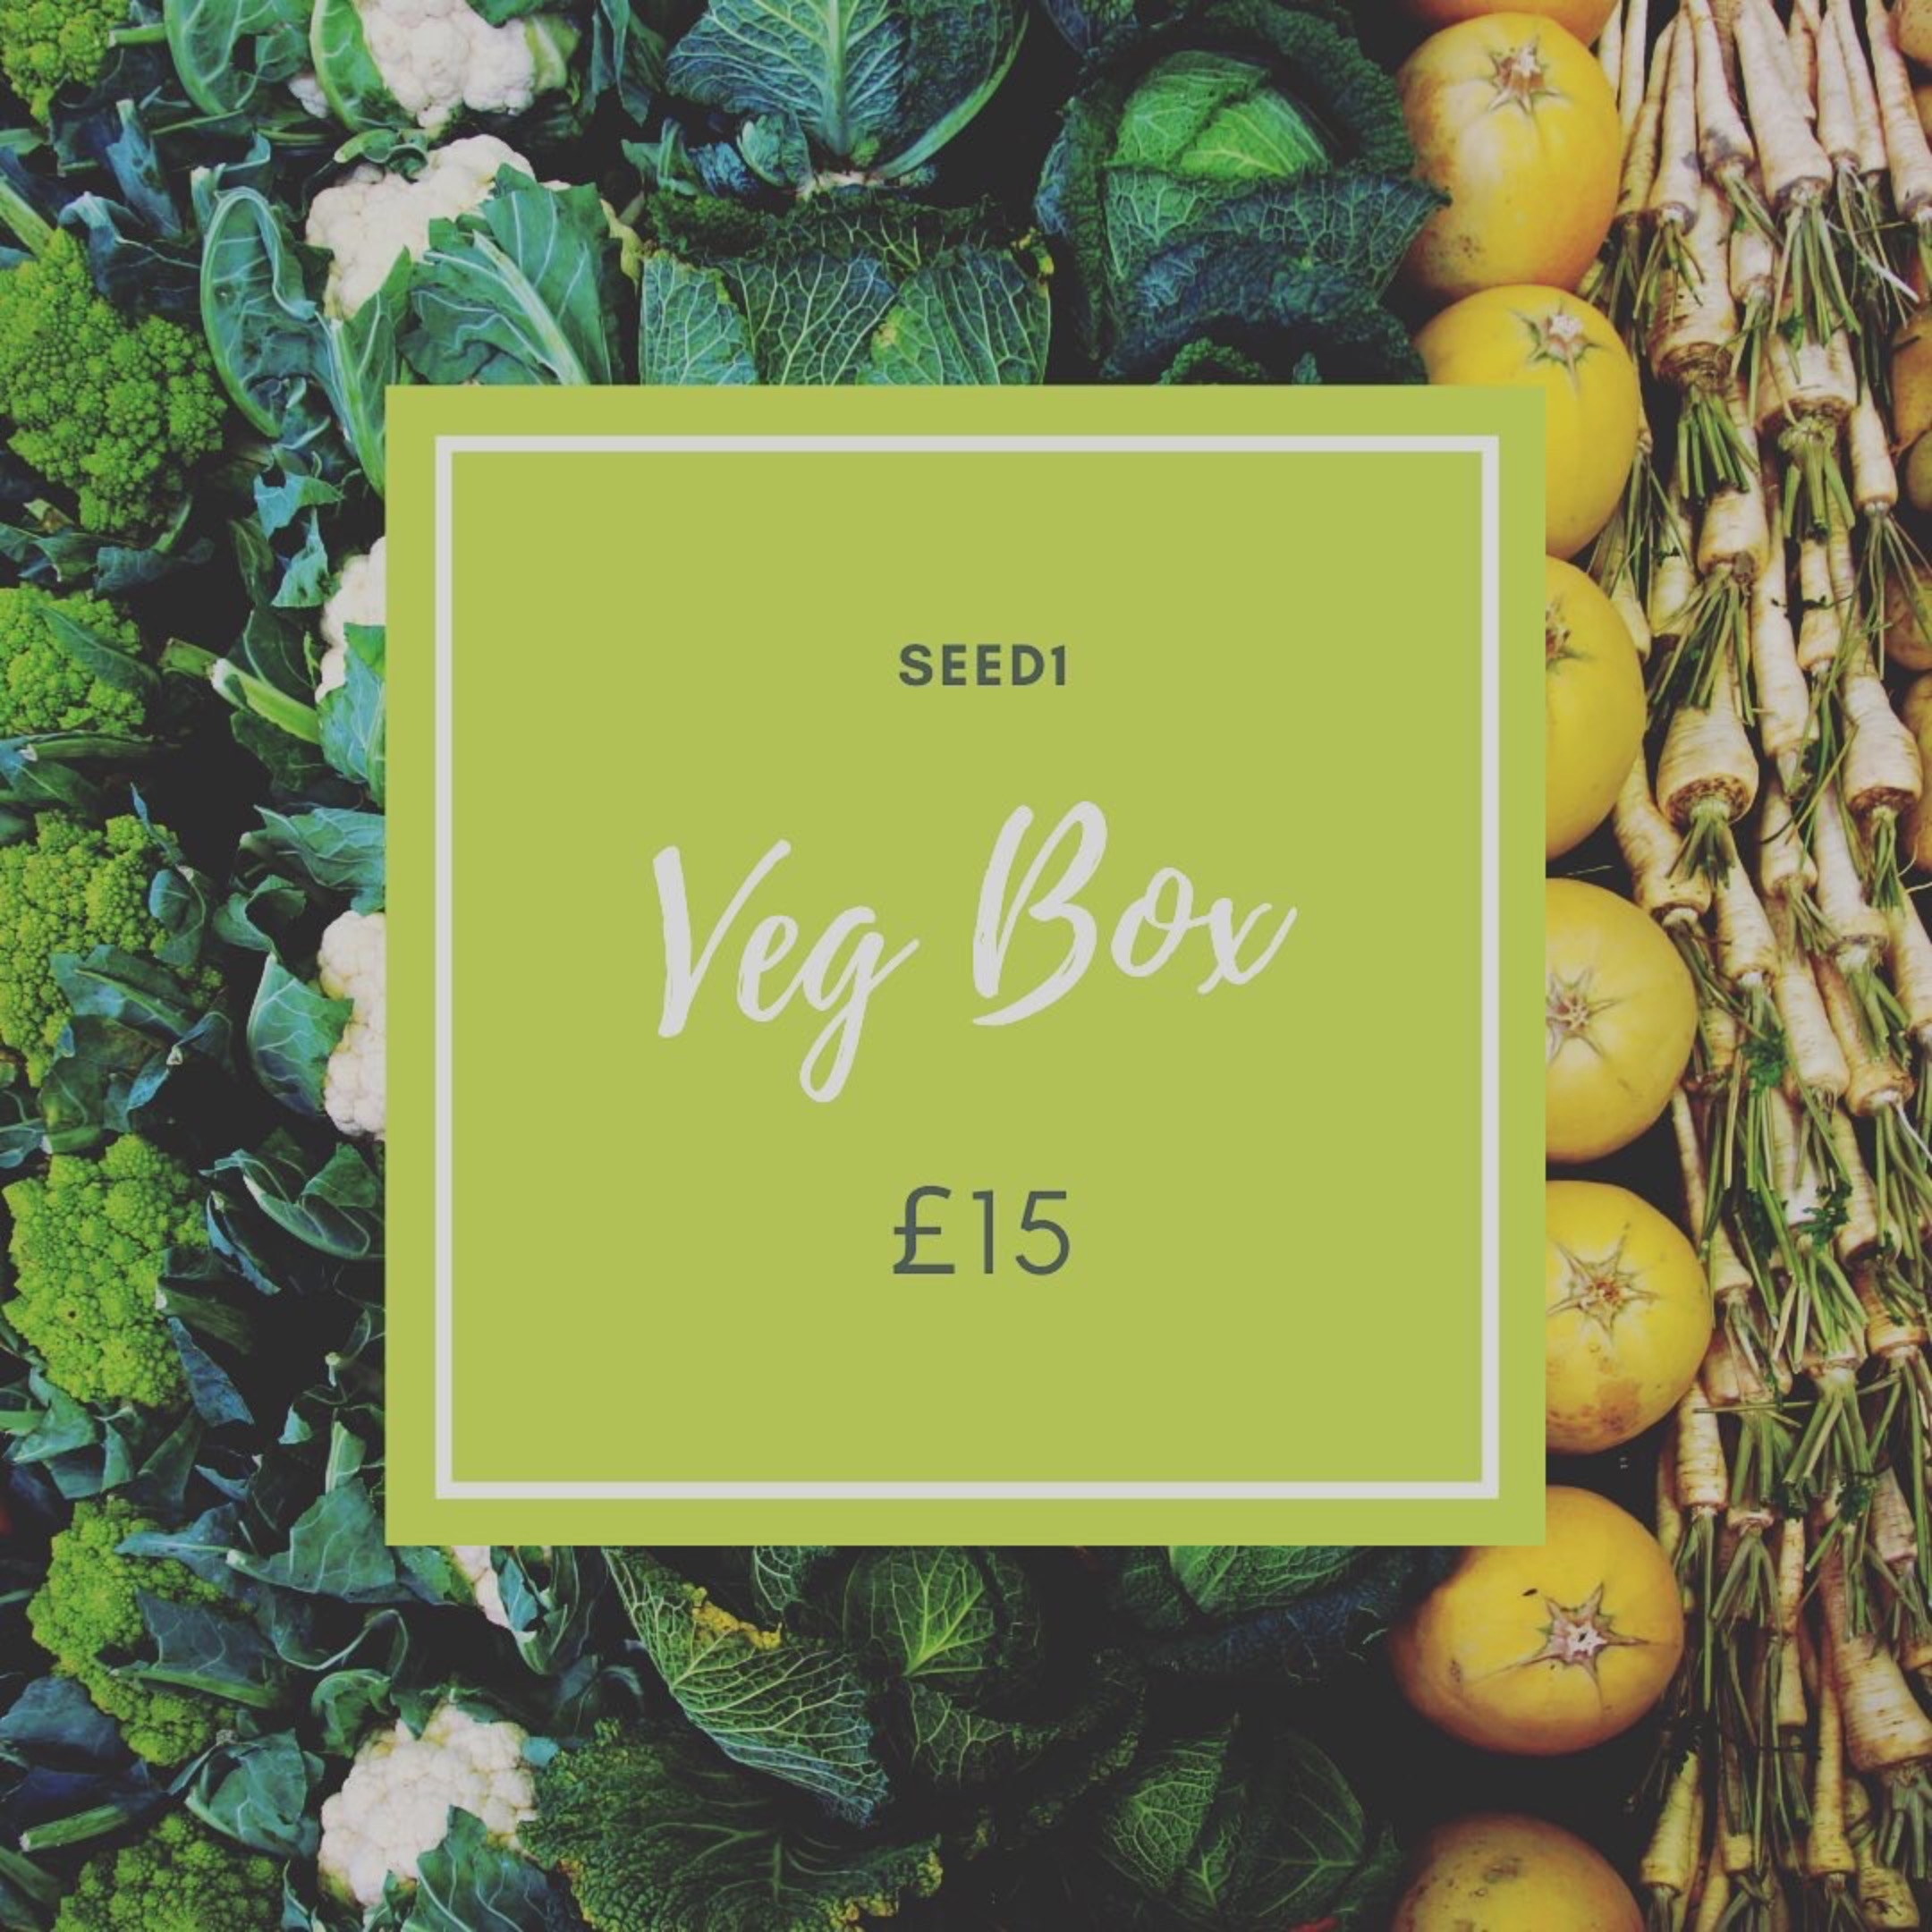 Veg Box £15. Email deliveries@seed1.co.uk to order.